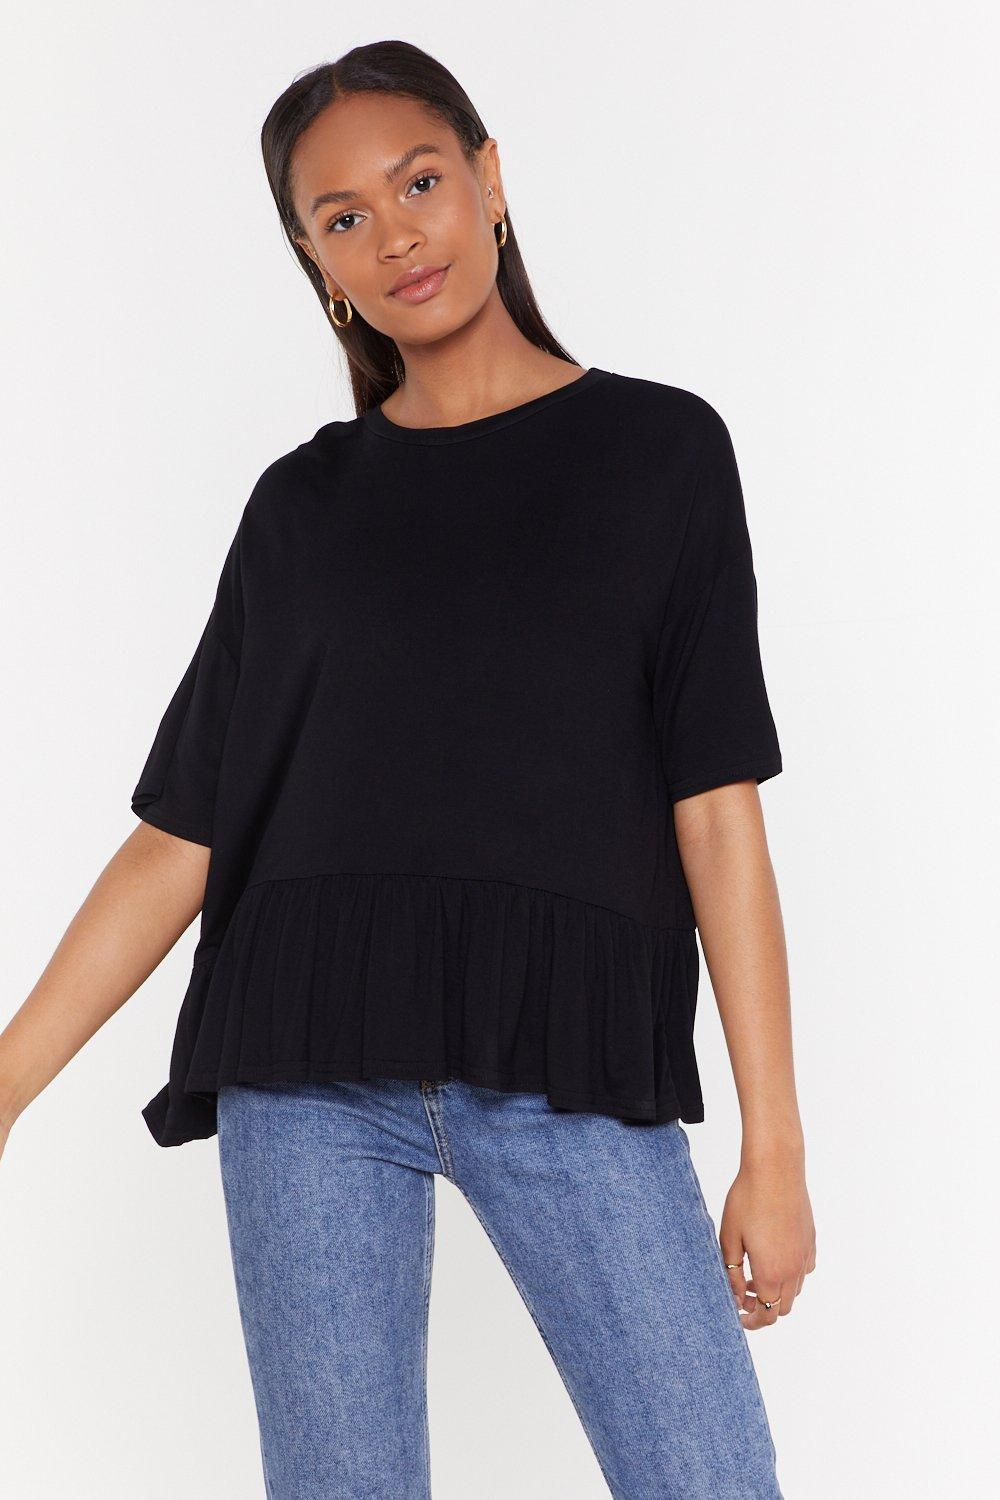 Keep It Frill Relaxed Ruffle Tee by Nasty Gal